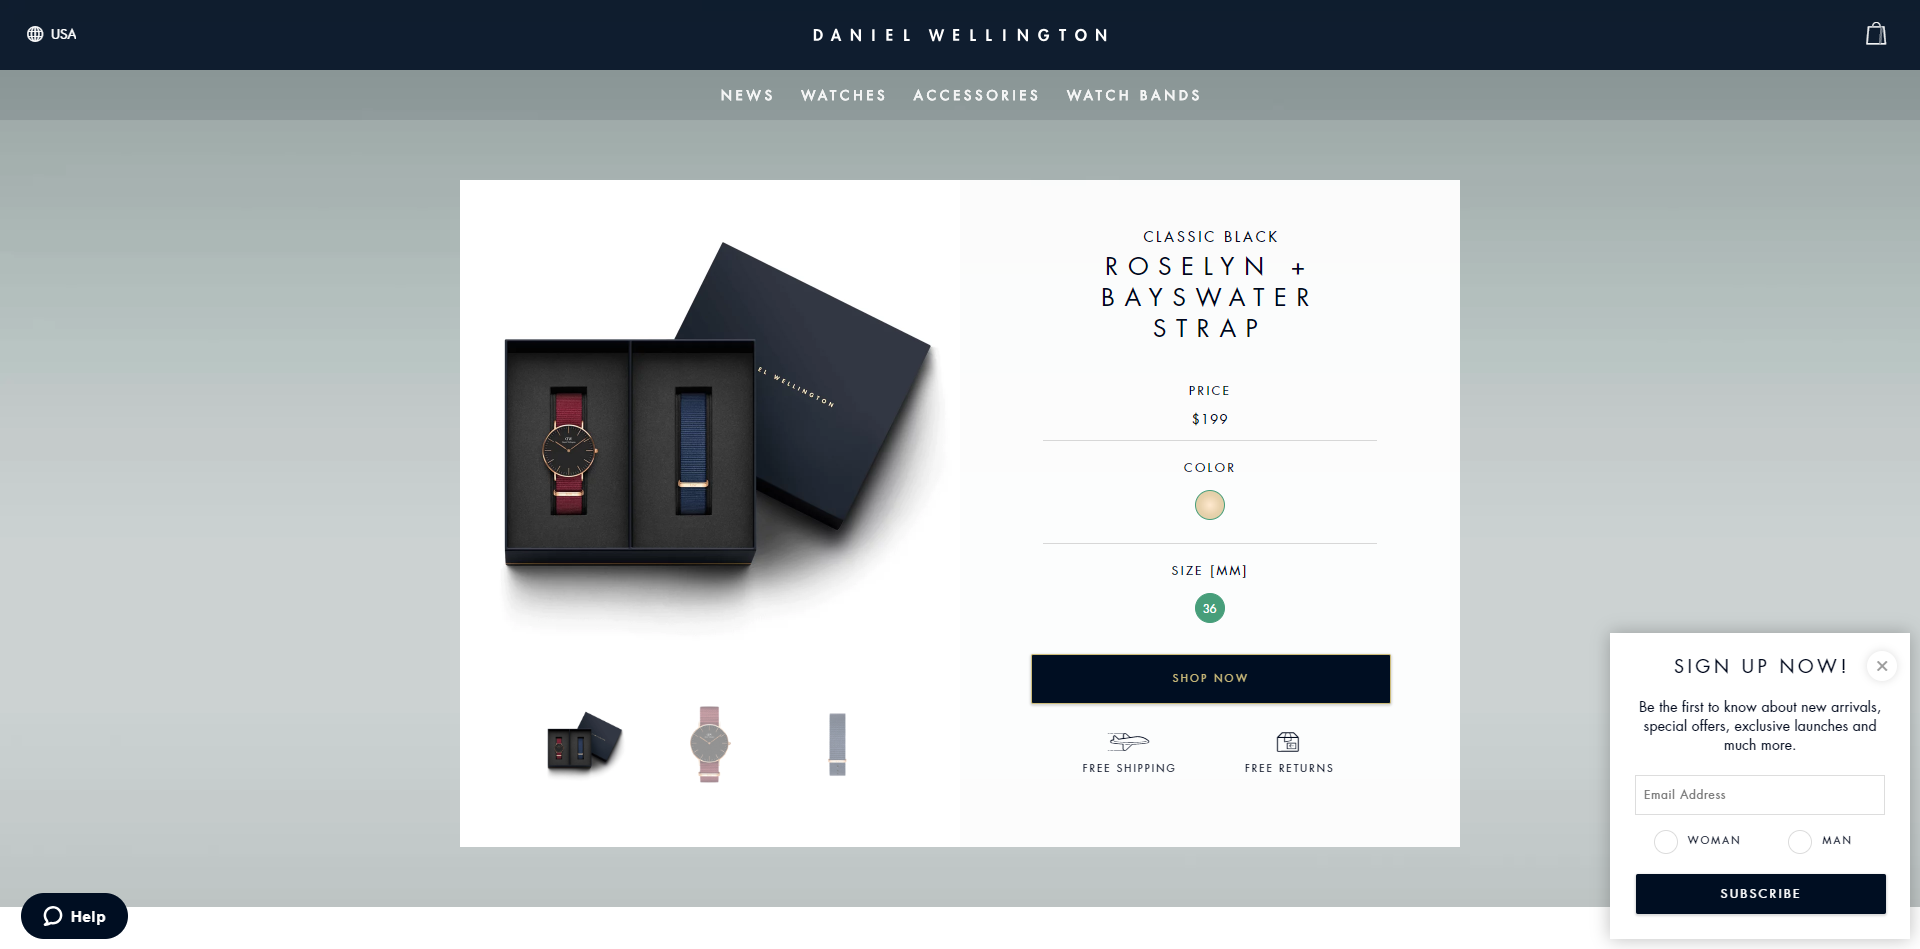 A side newsletter popup on DanielWellington.com